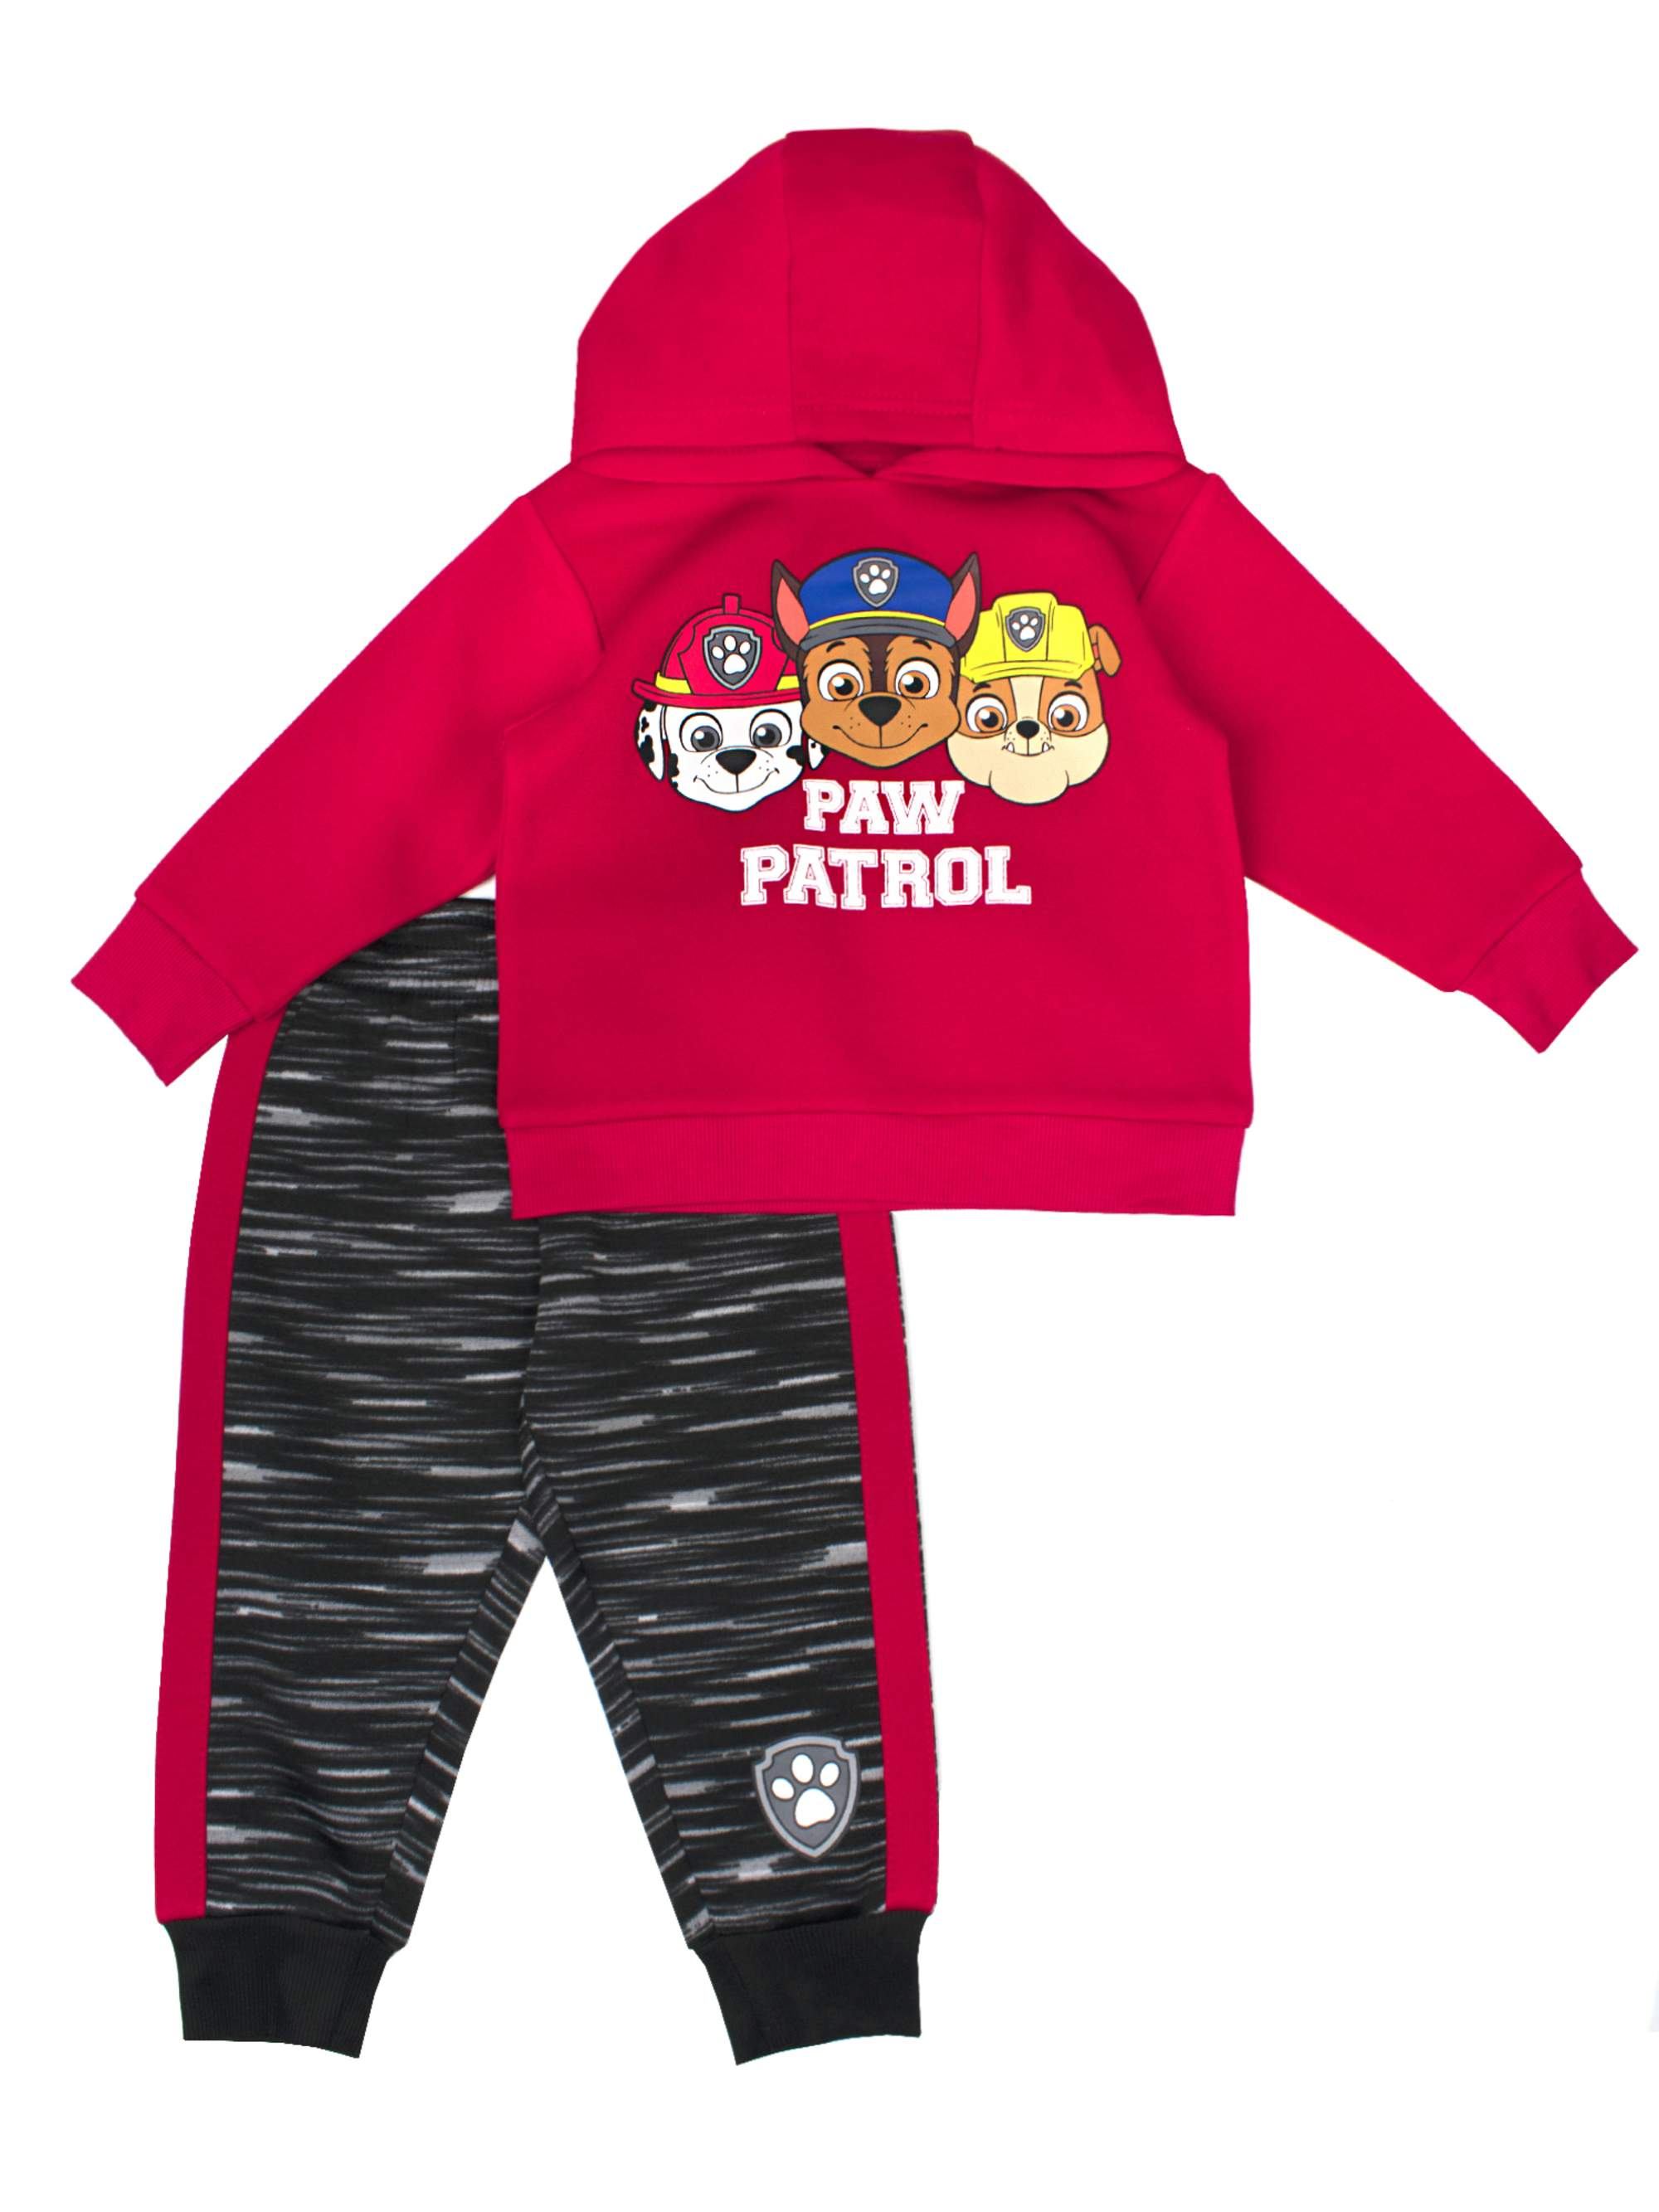 PAW Patrol Pullover Hoodie Sweatshirt & Jogger Pants, 2pc Outfit Set (Toddler Boys)